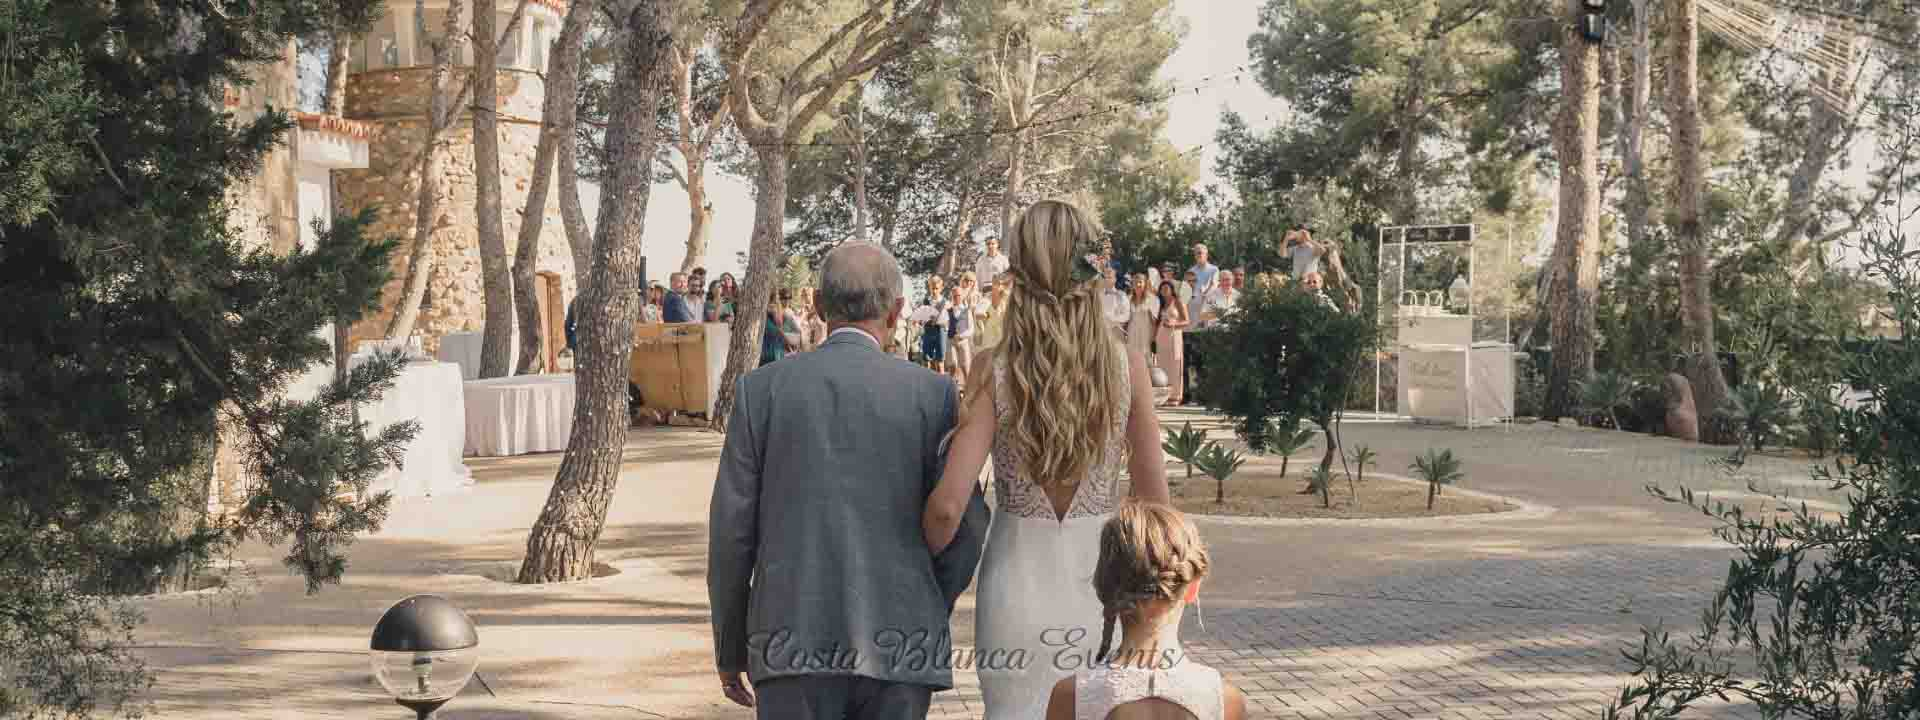 Best wedding venues in Spain - rustic spanish wedding venue estate